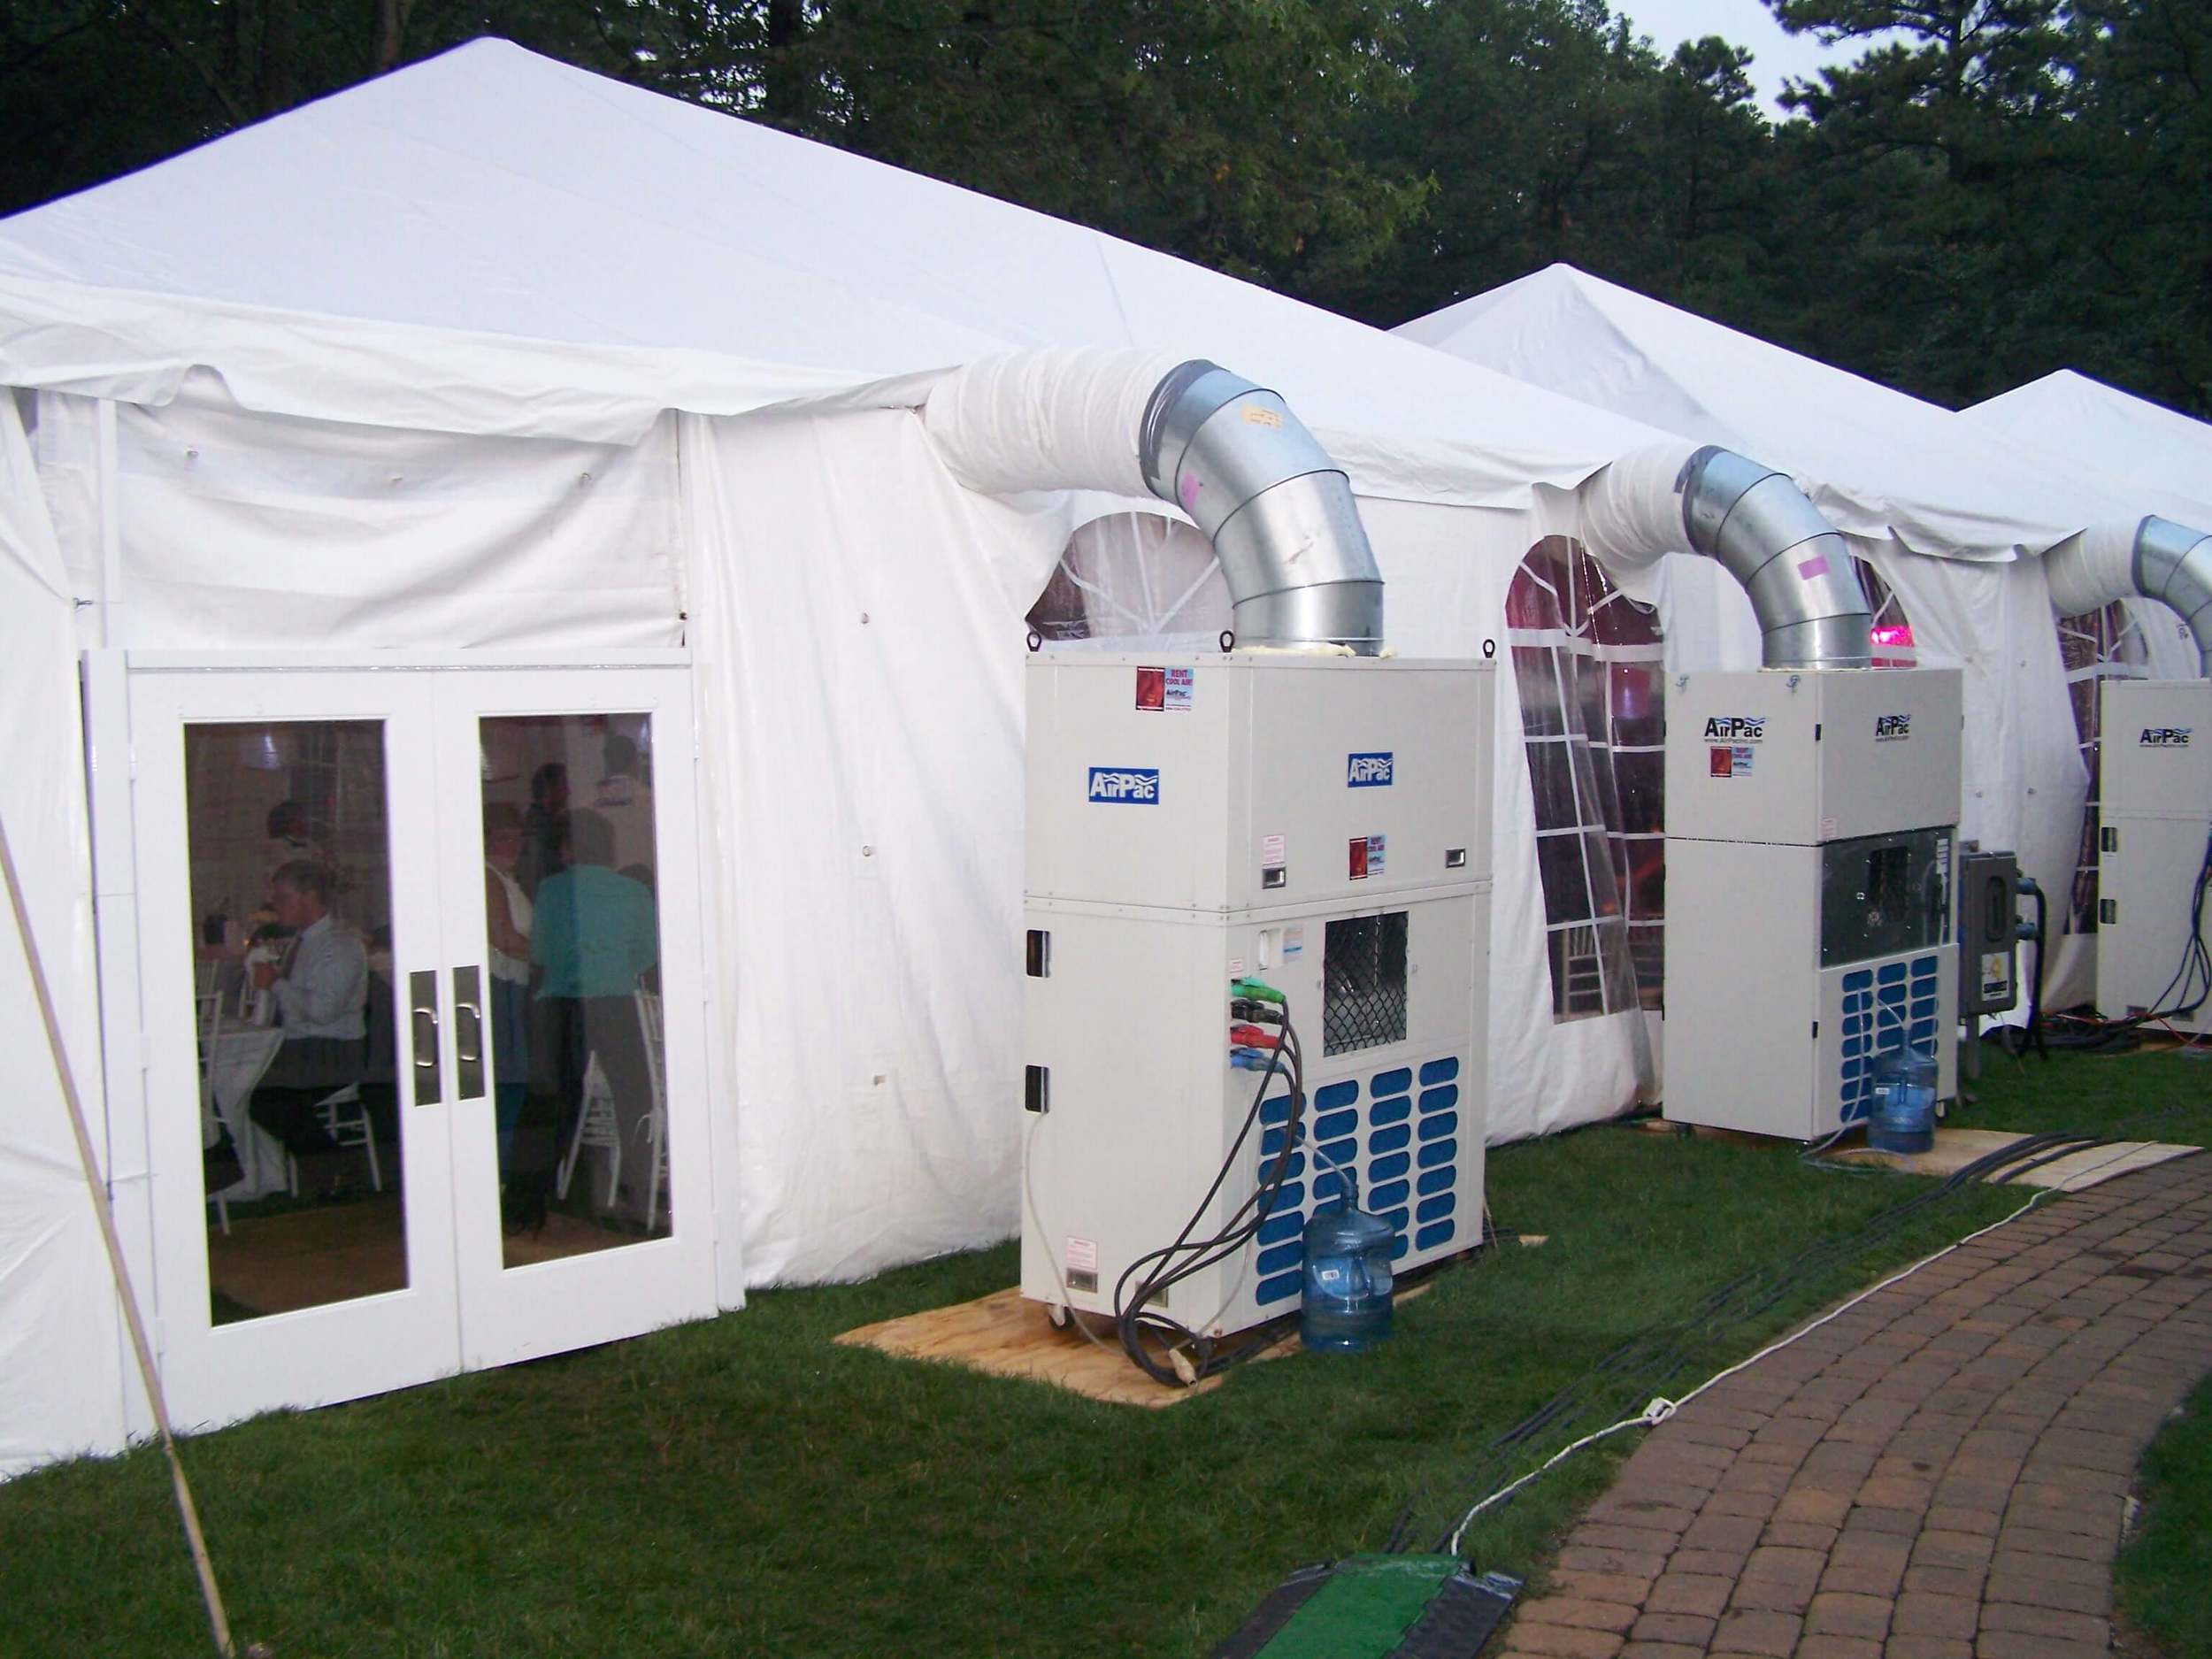 Tent Air Conditioning, Heating, & Power